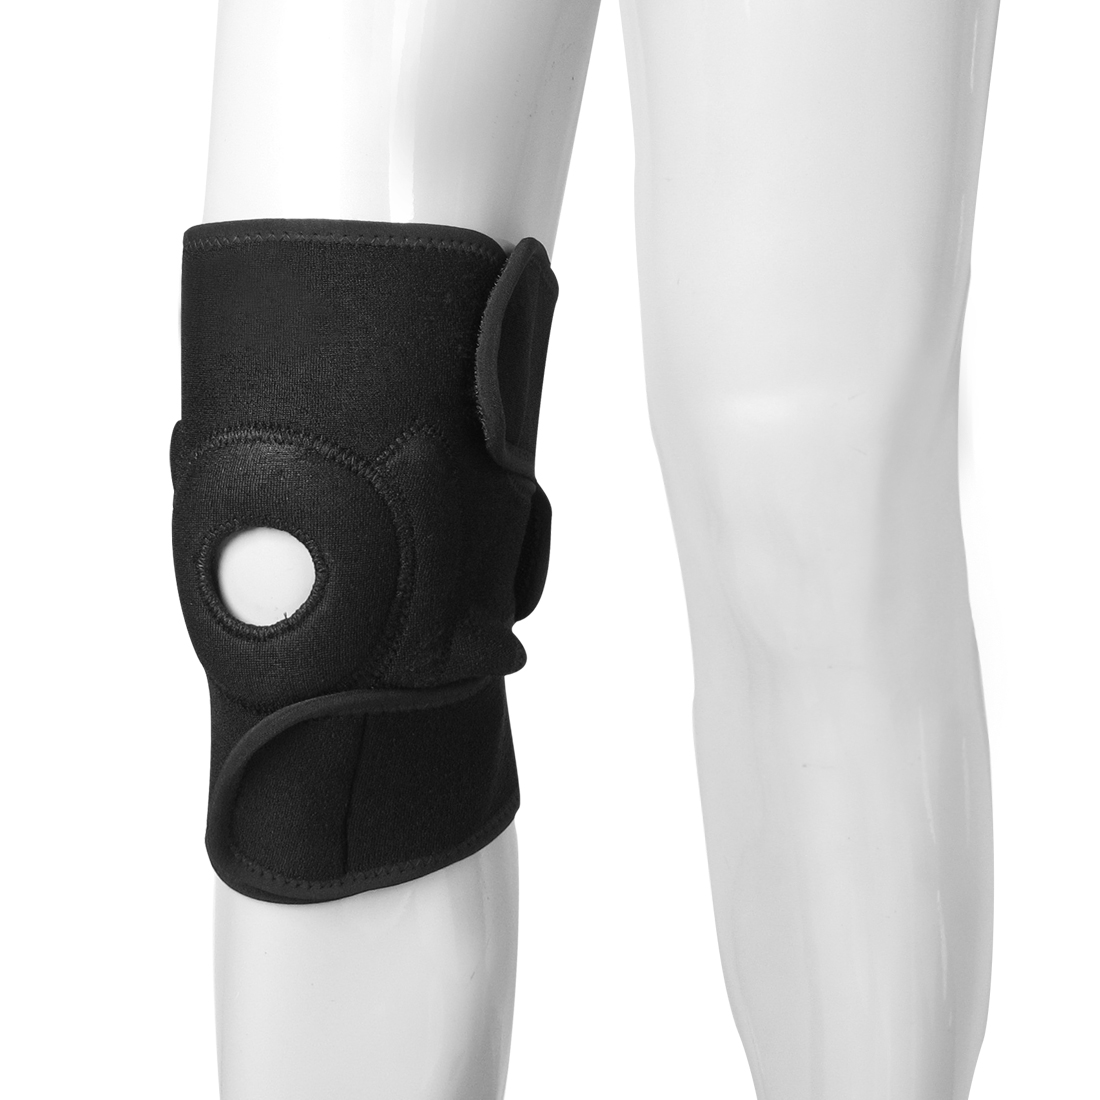 Sports Black Neoprene Elastic Hook and Loop Fastener Closure Knee Support Brace